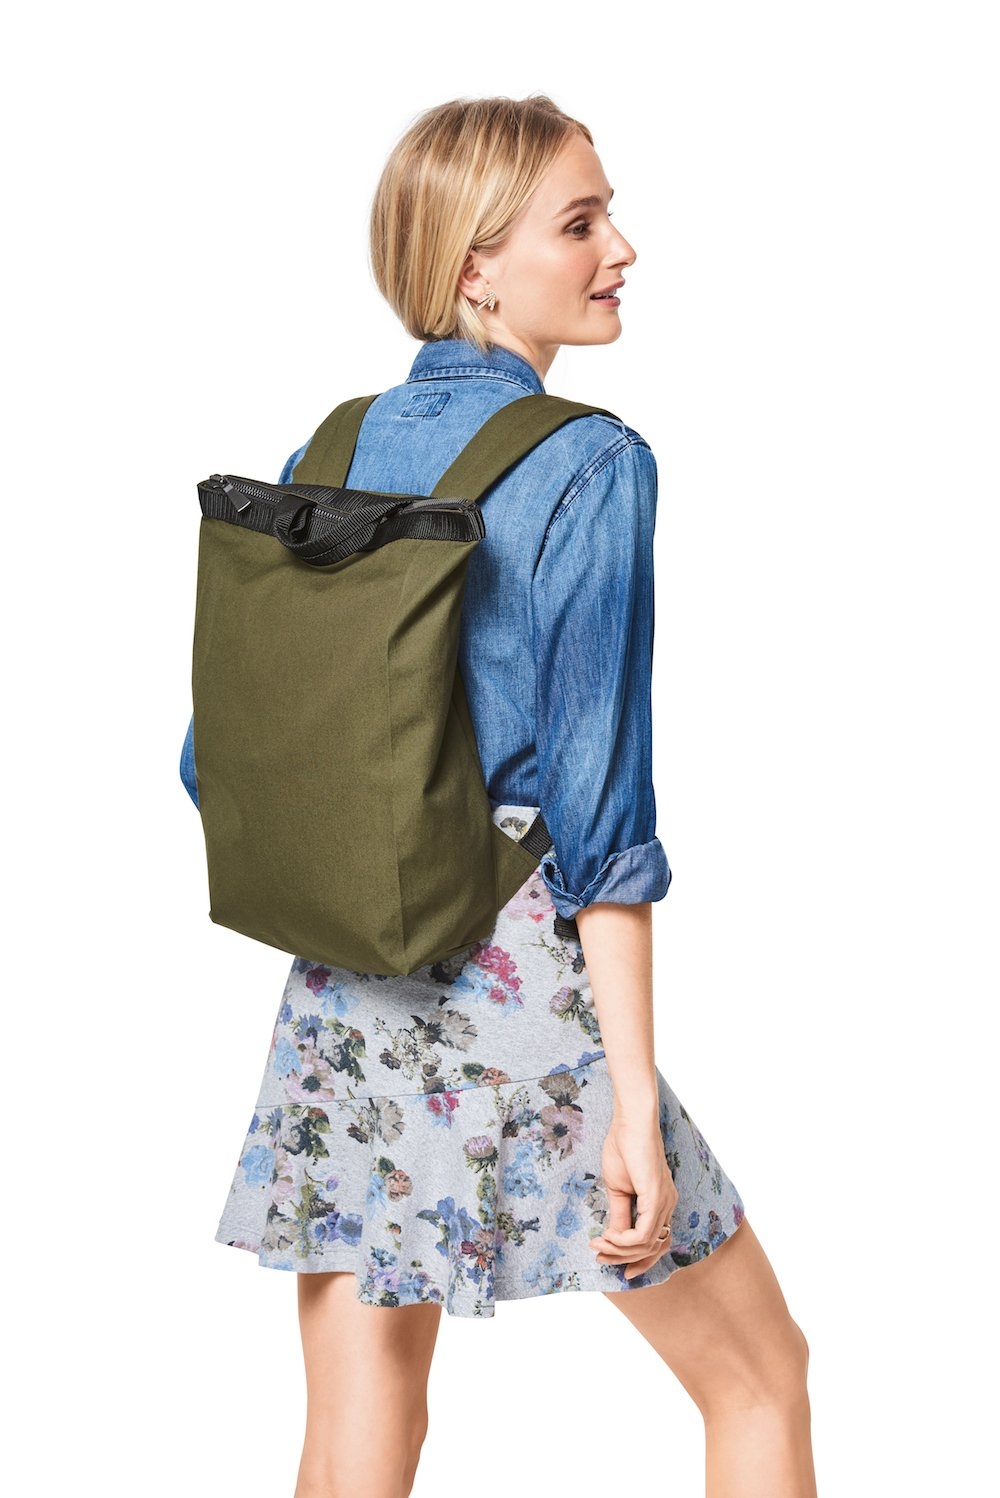 BD6400 Backpack with Zipper Fastener from Jaycotts Sewing Supplies